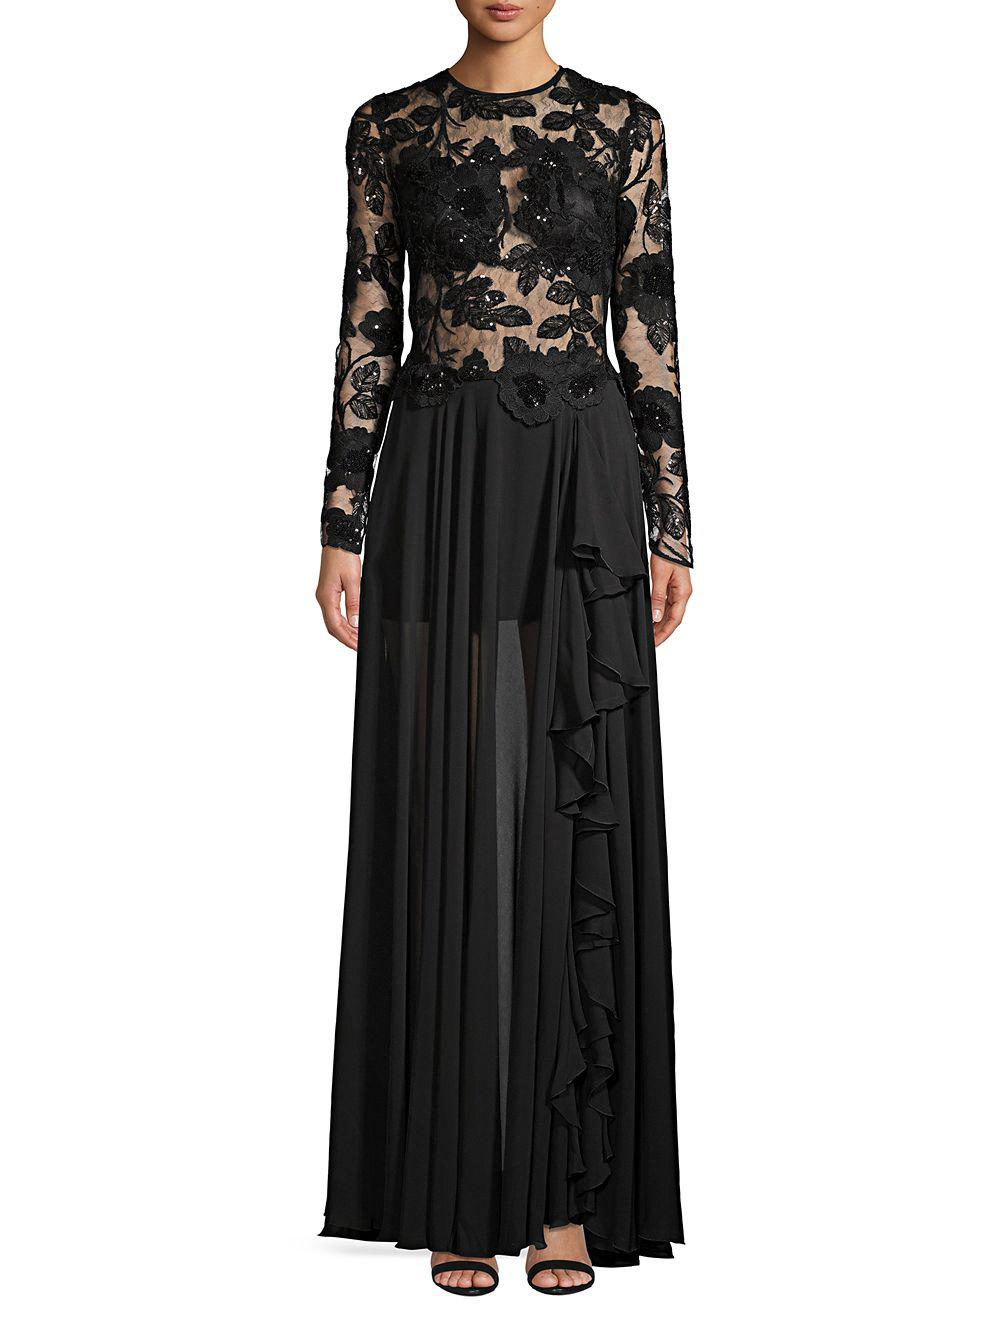 7b6c2729c085d Nicole Bakti Long Sleeve Floral Embroidered Gown in Black - Lyst